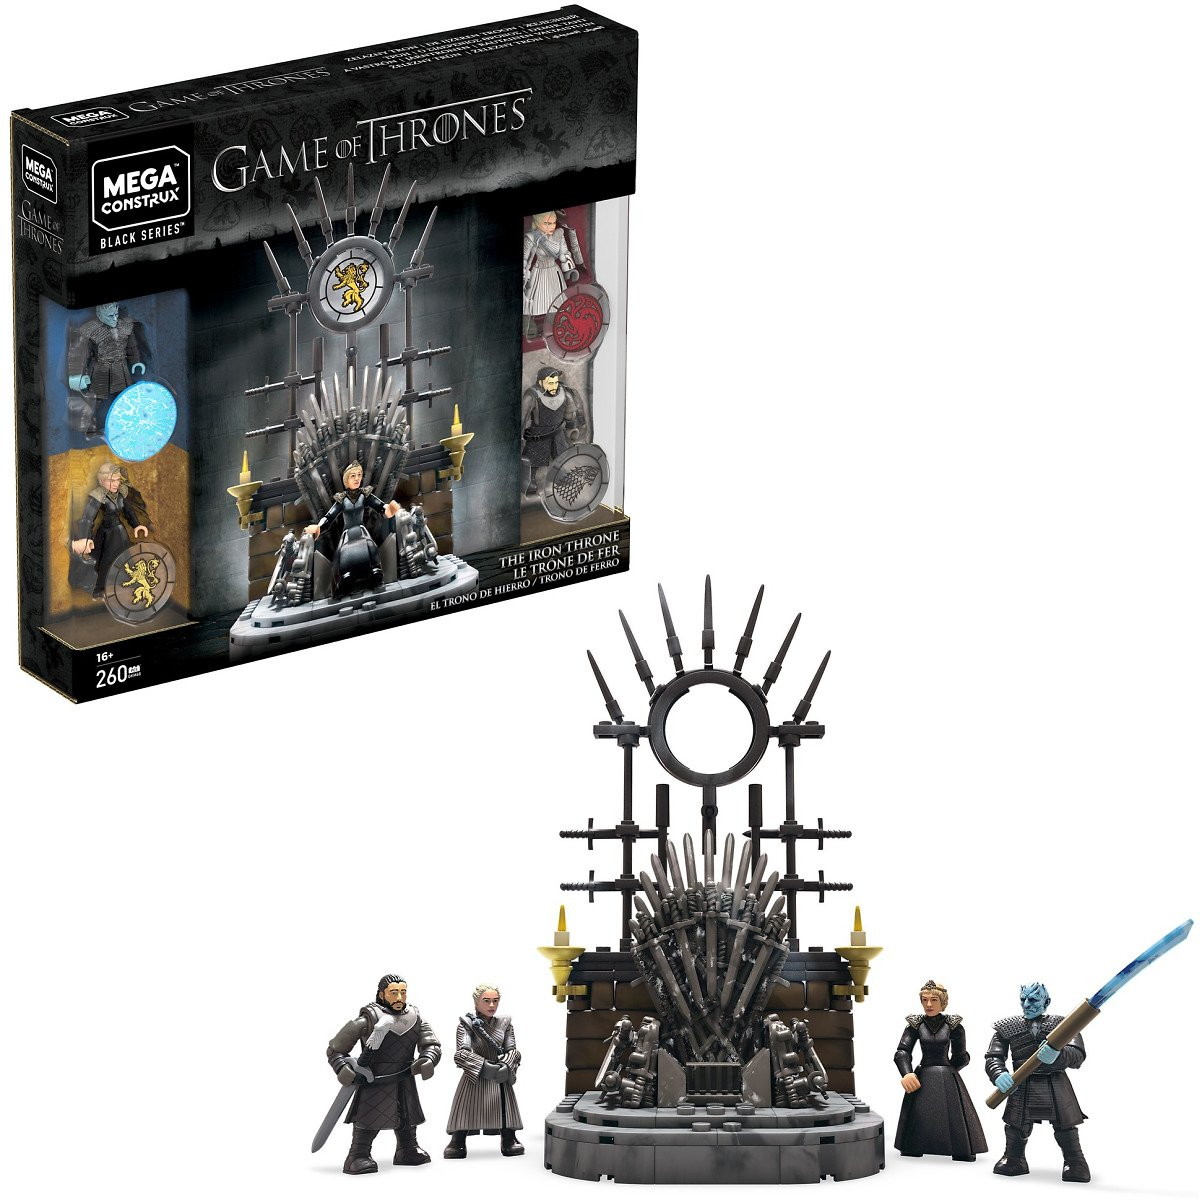 Mega Construx Game of Thrones The Iron Throne Construction Set with Character Figures (260 Pieces)